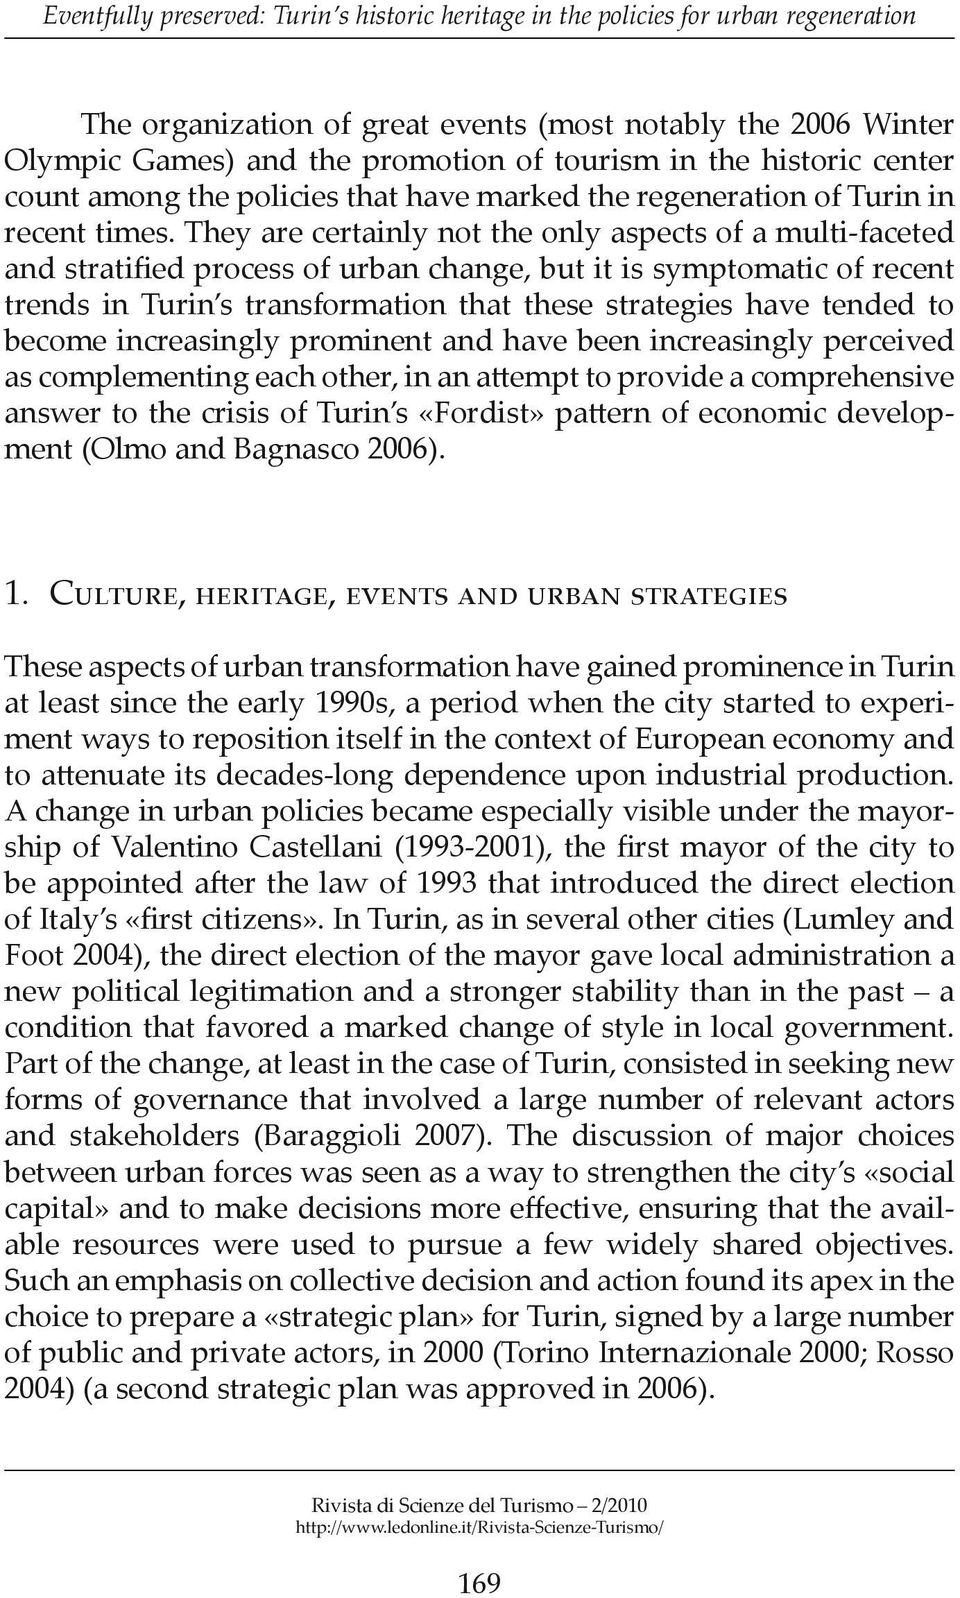 They are certainly not the only aspects of a multi-faceted and stratified process of urban change, but it is symptomatic of recent trends in Turin s transformation that these strategies have tended